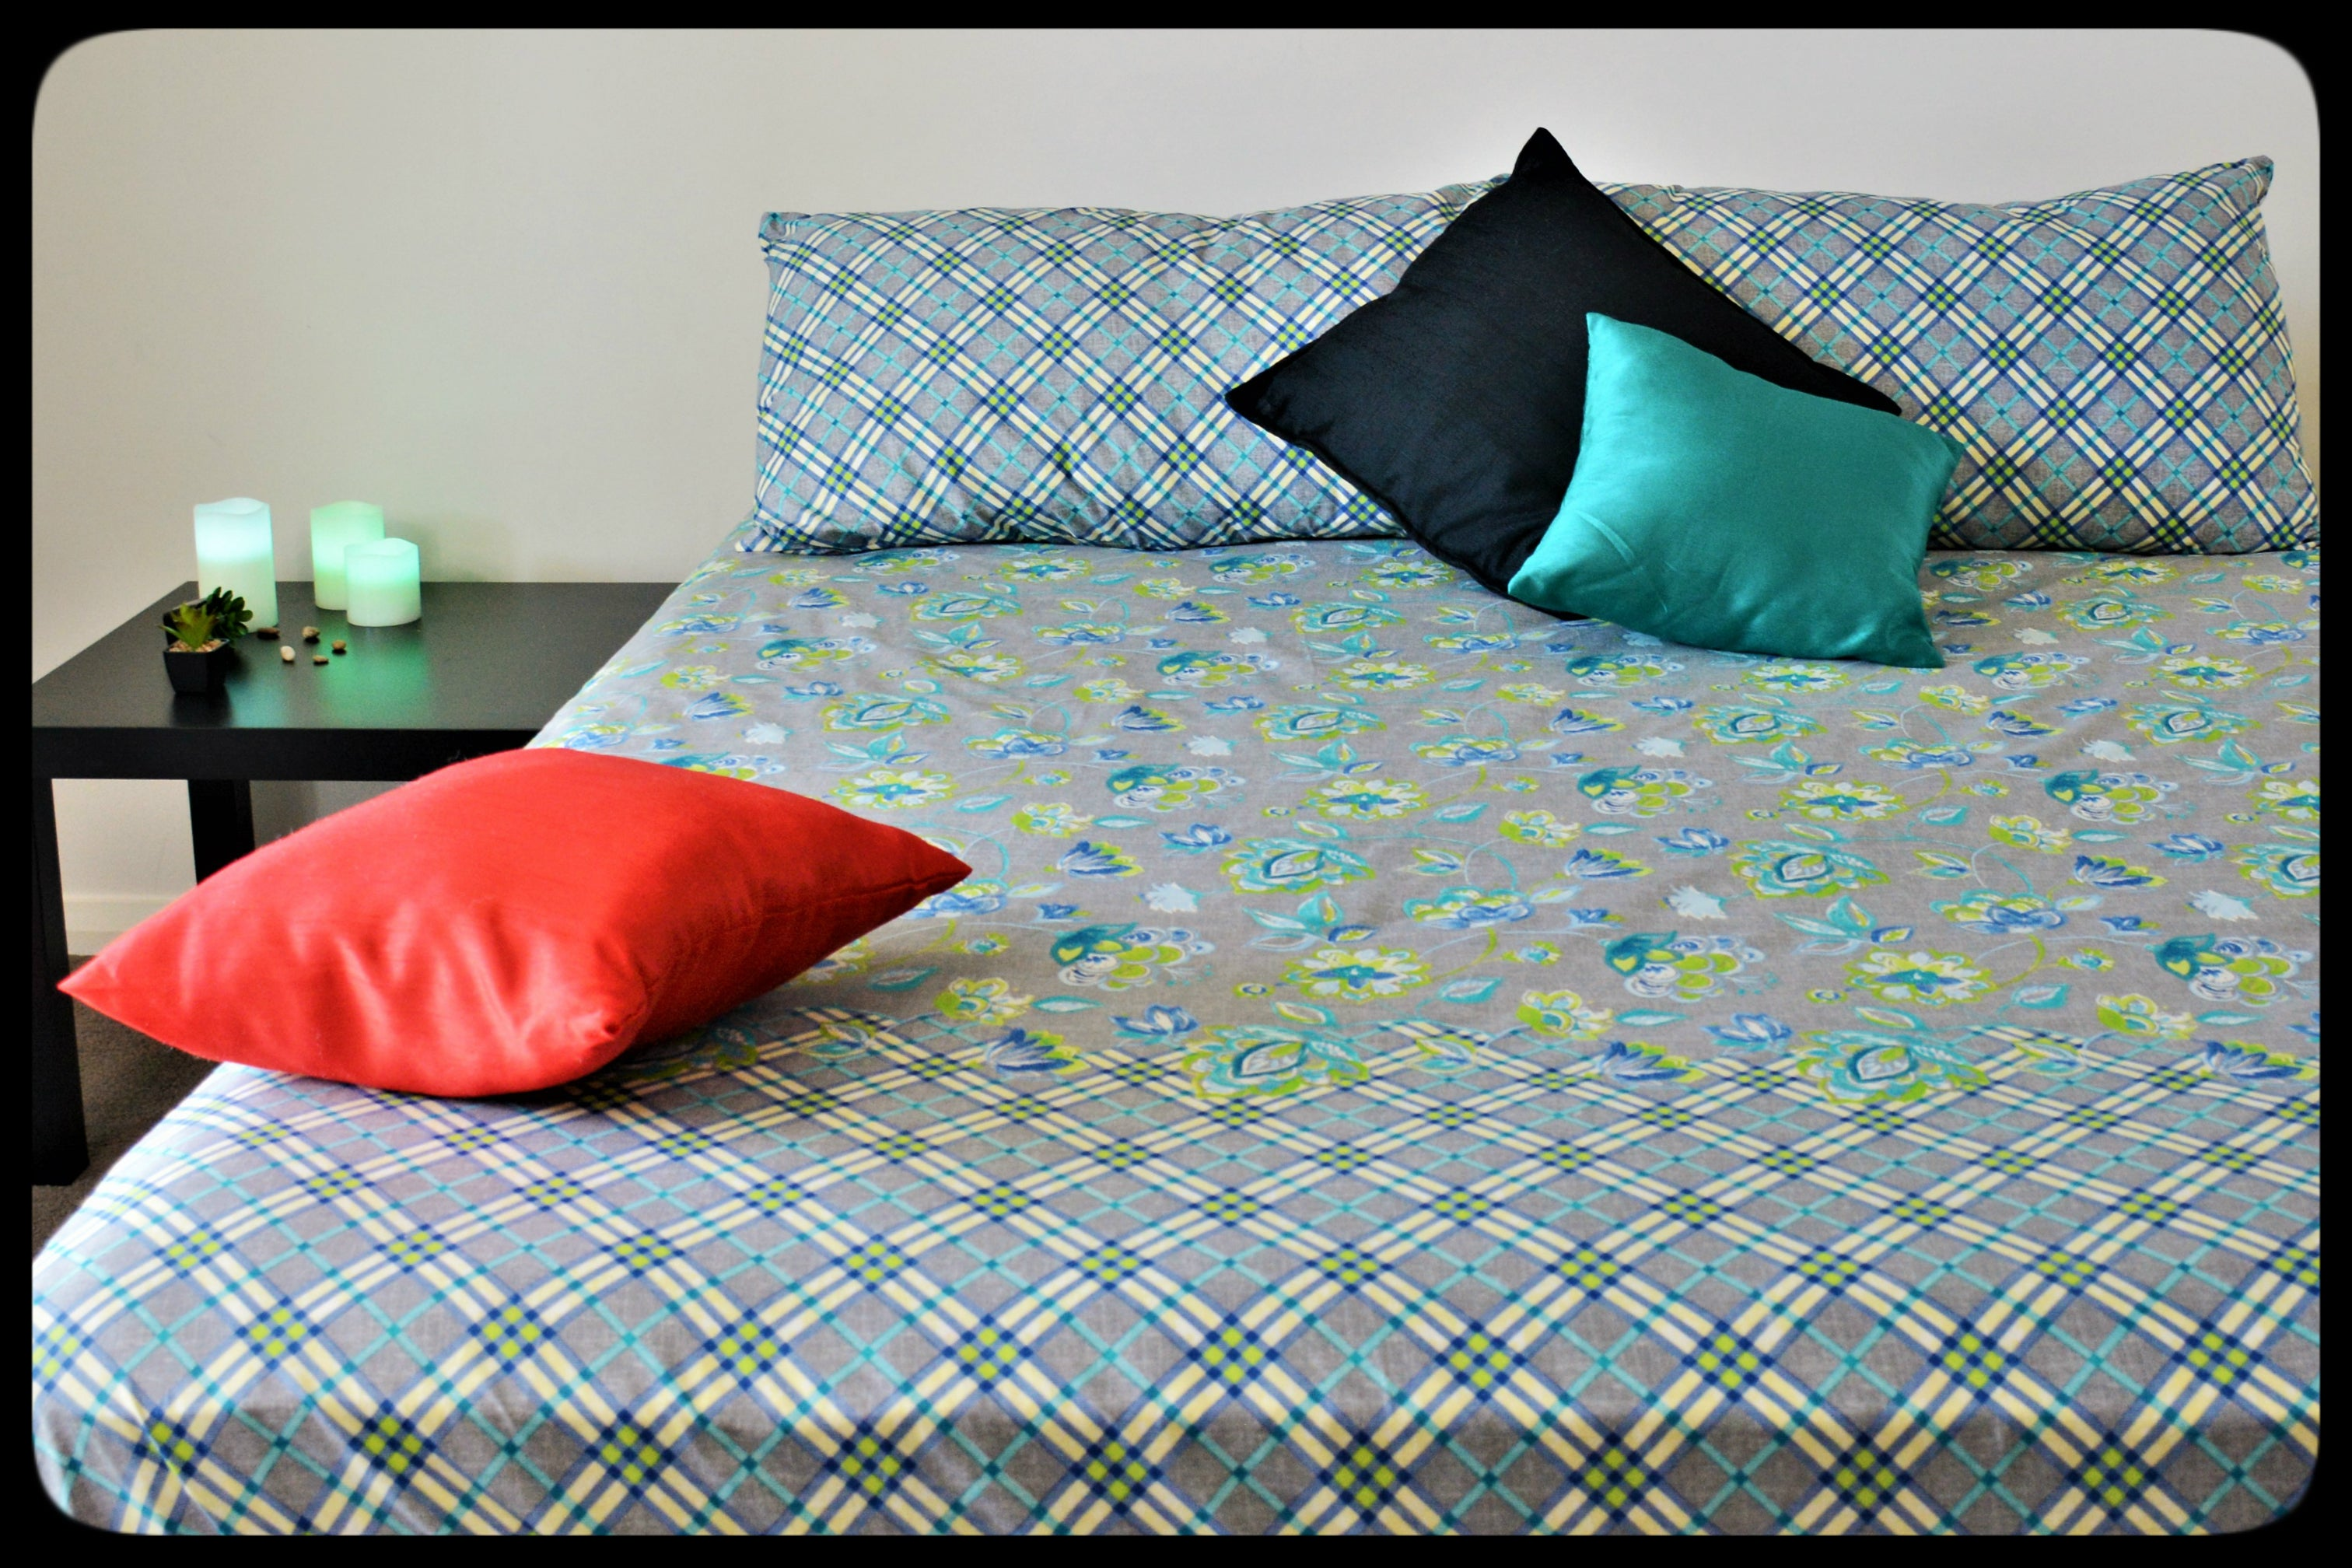 King Size & Queen Size Bed sheets. Quality Bed Sheets. Colorful Cotton Bed Sheets (Fitted Sheets) by Naqsh (Style: Kalyaan / Blossom)